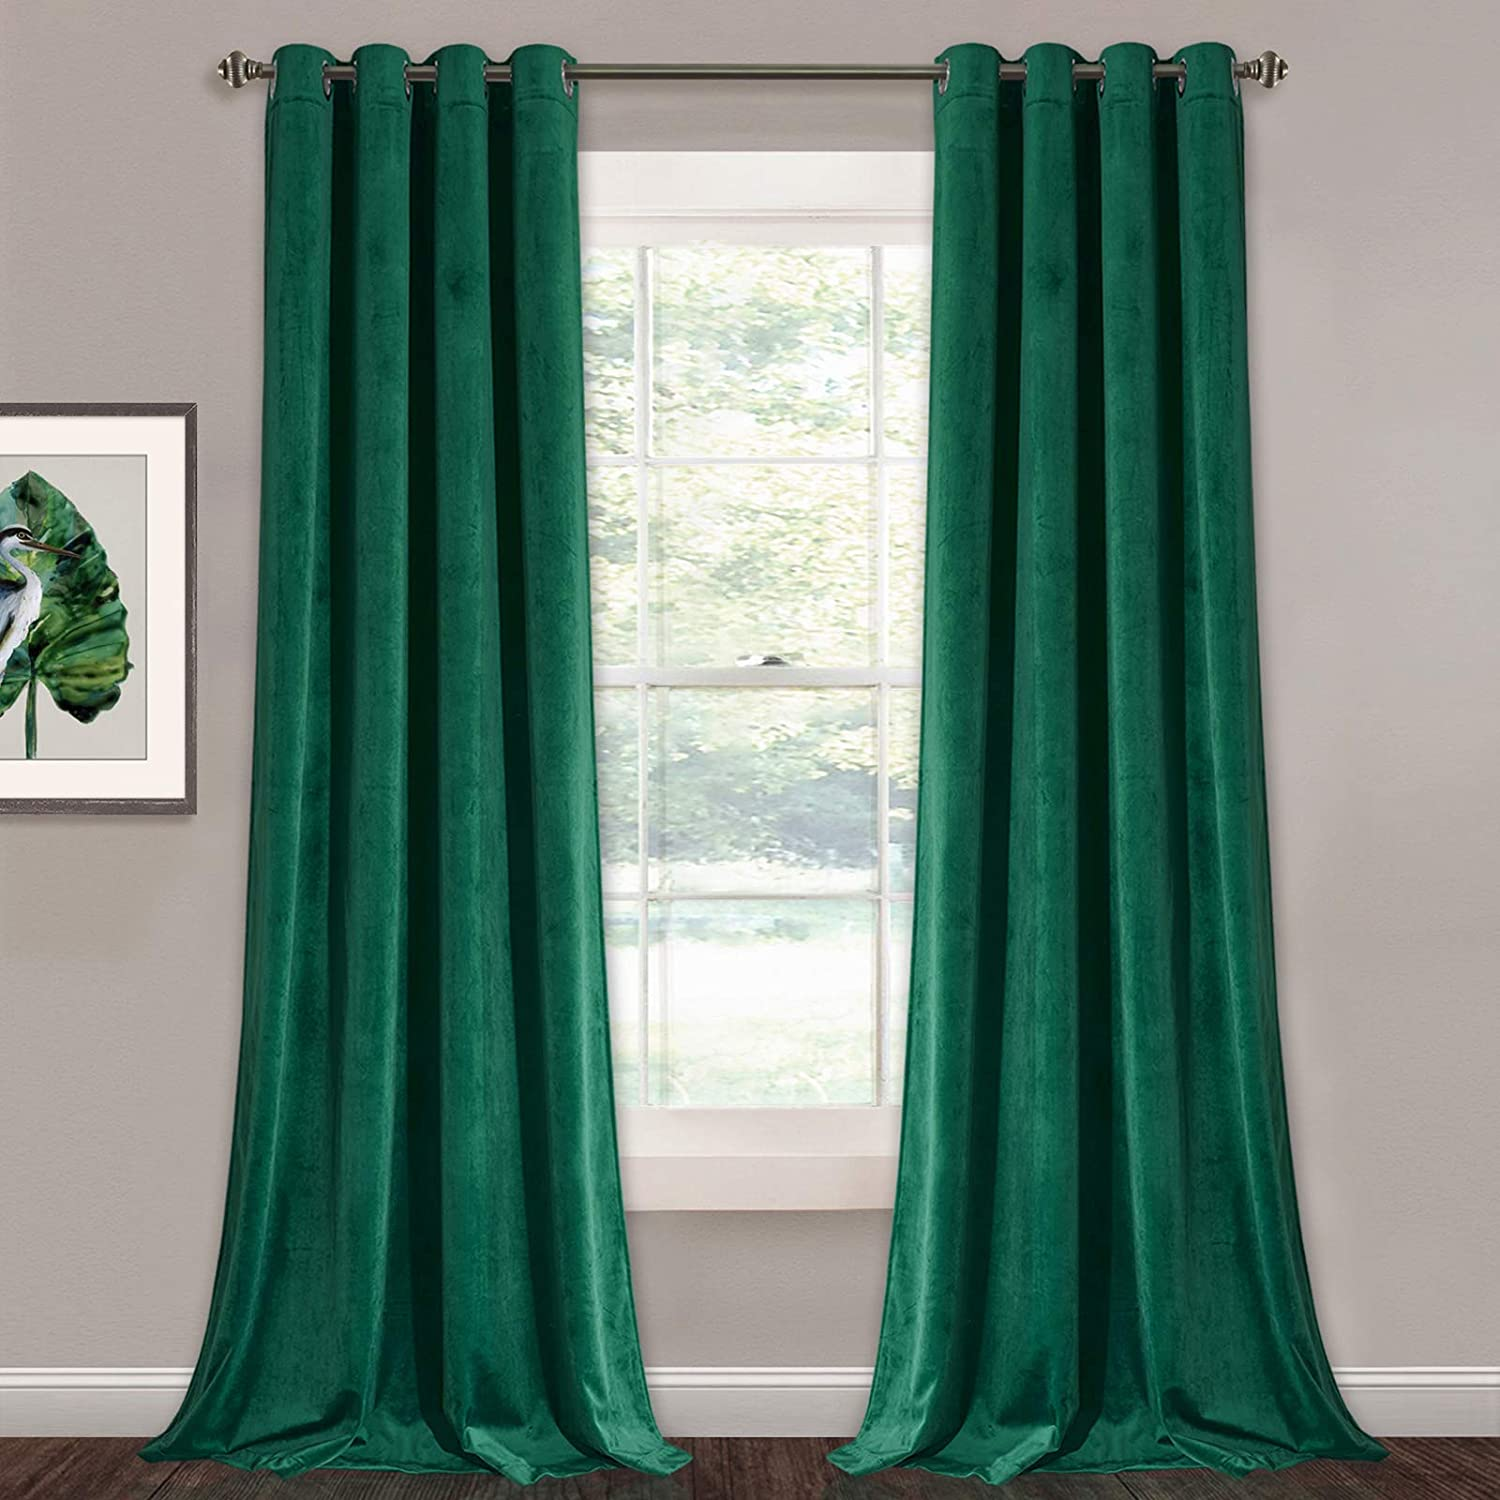 Green Velvet Curtains 96 inches - Super Soft Luxury Blackout Velvet Drapes Elegant Home Decor Window Covering for Living Room / Dining Room, W52 x L96 inches, 2 Panels